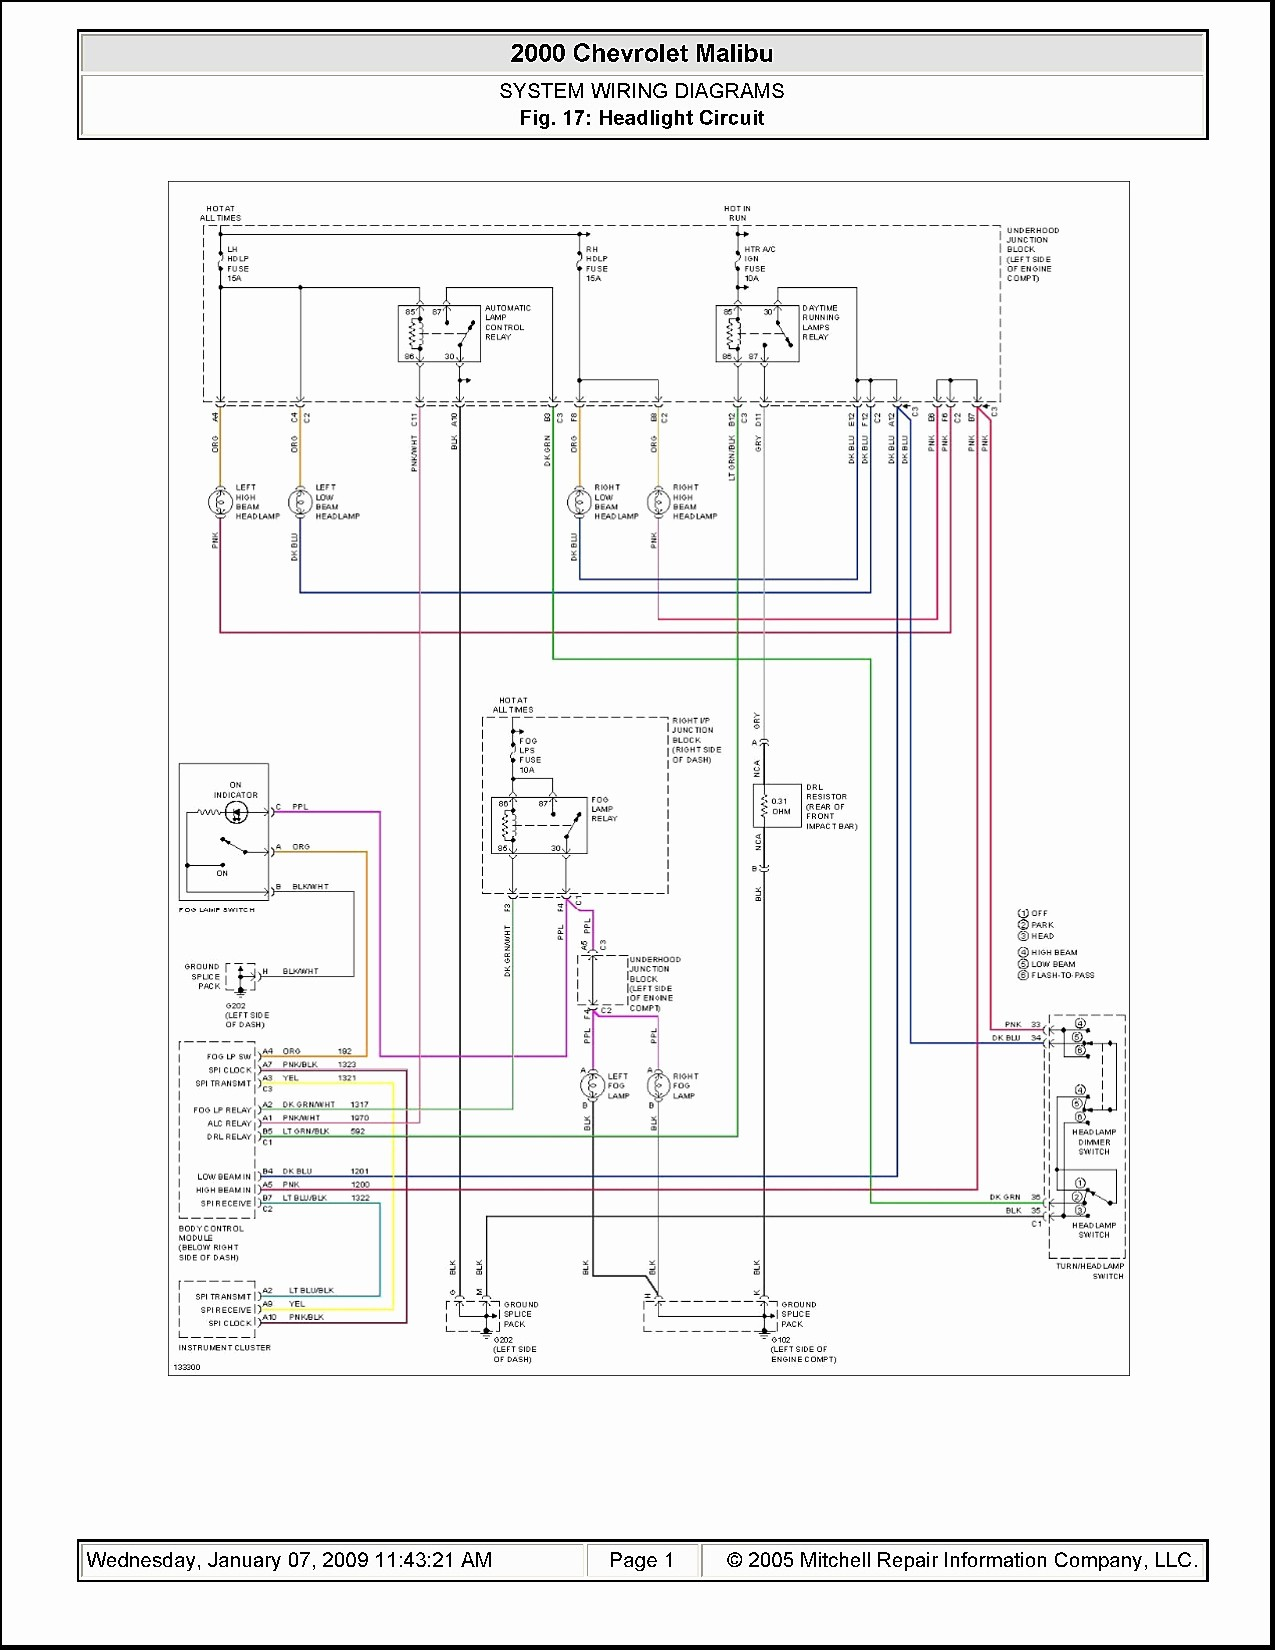 Santa Fe Wiring Diagram | Wiring Diagrams on 2007 hyundai sonata wiring diagram, 2002 hyundai sonata exhaust, 1990 hyundai sonata wiring diagram, 1994 hyundai excel wiring diagram, 05 sonata headlamp wiring diagram, 2013 hyundai elantra wiring diagram, 2009 hyundai santa fe wiring diagram, hyundai sonata fuse box diagram, 2006 hyundai santa fe wiring diagram, 2007 hyundai santa fe wiring diagram, 2002 hyundai sonata serpentine belt diagram, 2011 hyundai tucson wiring diagram, 1999 hyundai sonata wiring diagram, 2005 hyundai santa fe wiring diagram, 2003 hyundai santa fe wiring diagram, 2002 hyundai santa fe wiring diagram, 2003 hyundai xg350 wiring diagram, 2007 hyundai entourage wiring diagram, 2011 hyundai genesis coupe wiring diagram, 2002 hyundai sonata gls,